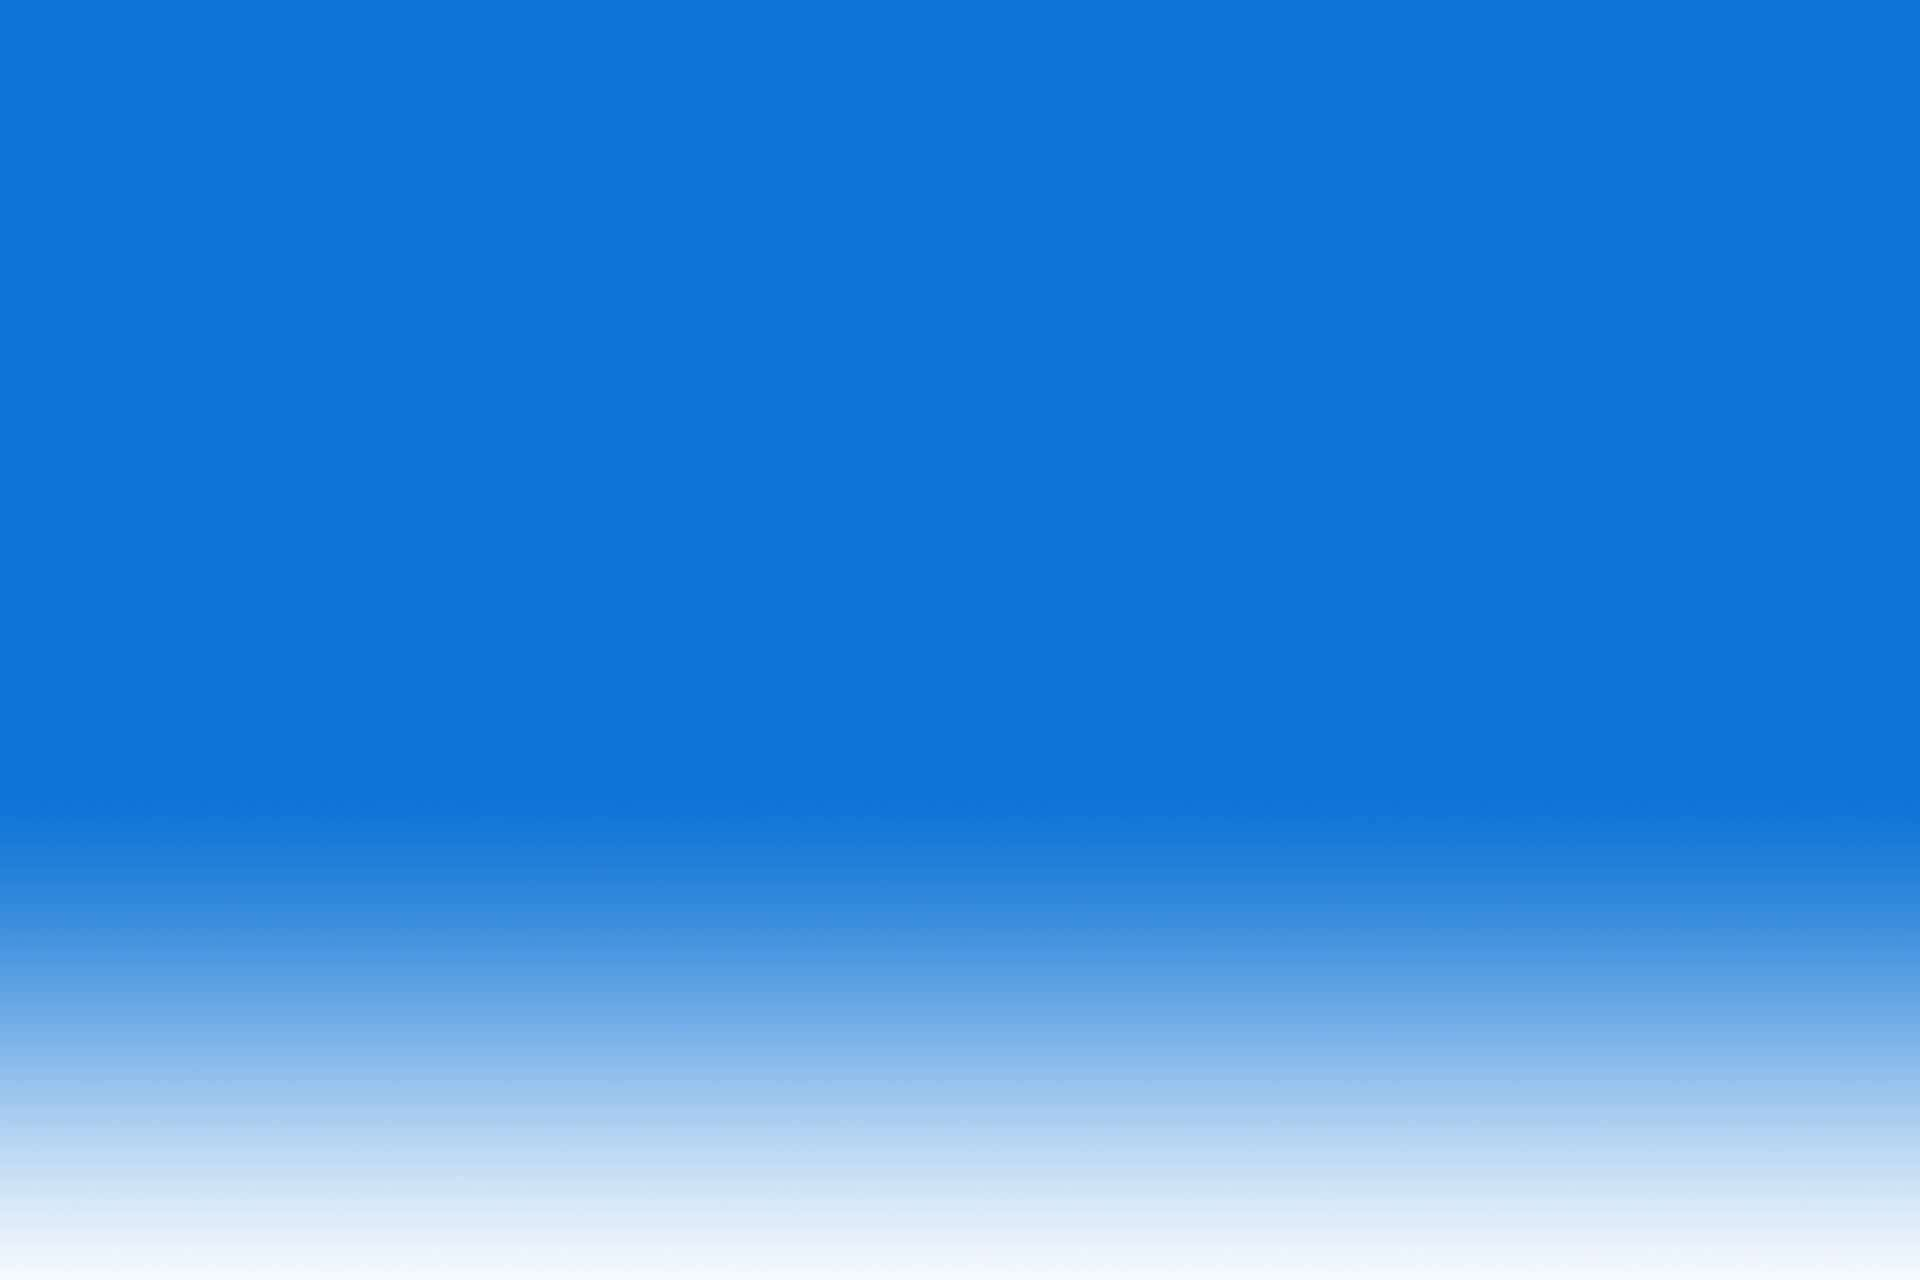 Mimidoux-slider-pictures-Gradient-Background-Blue